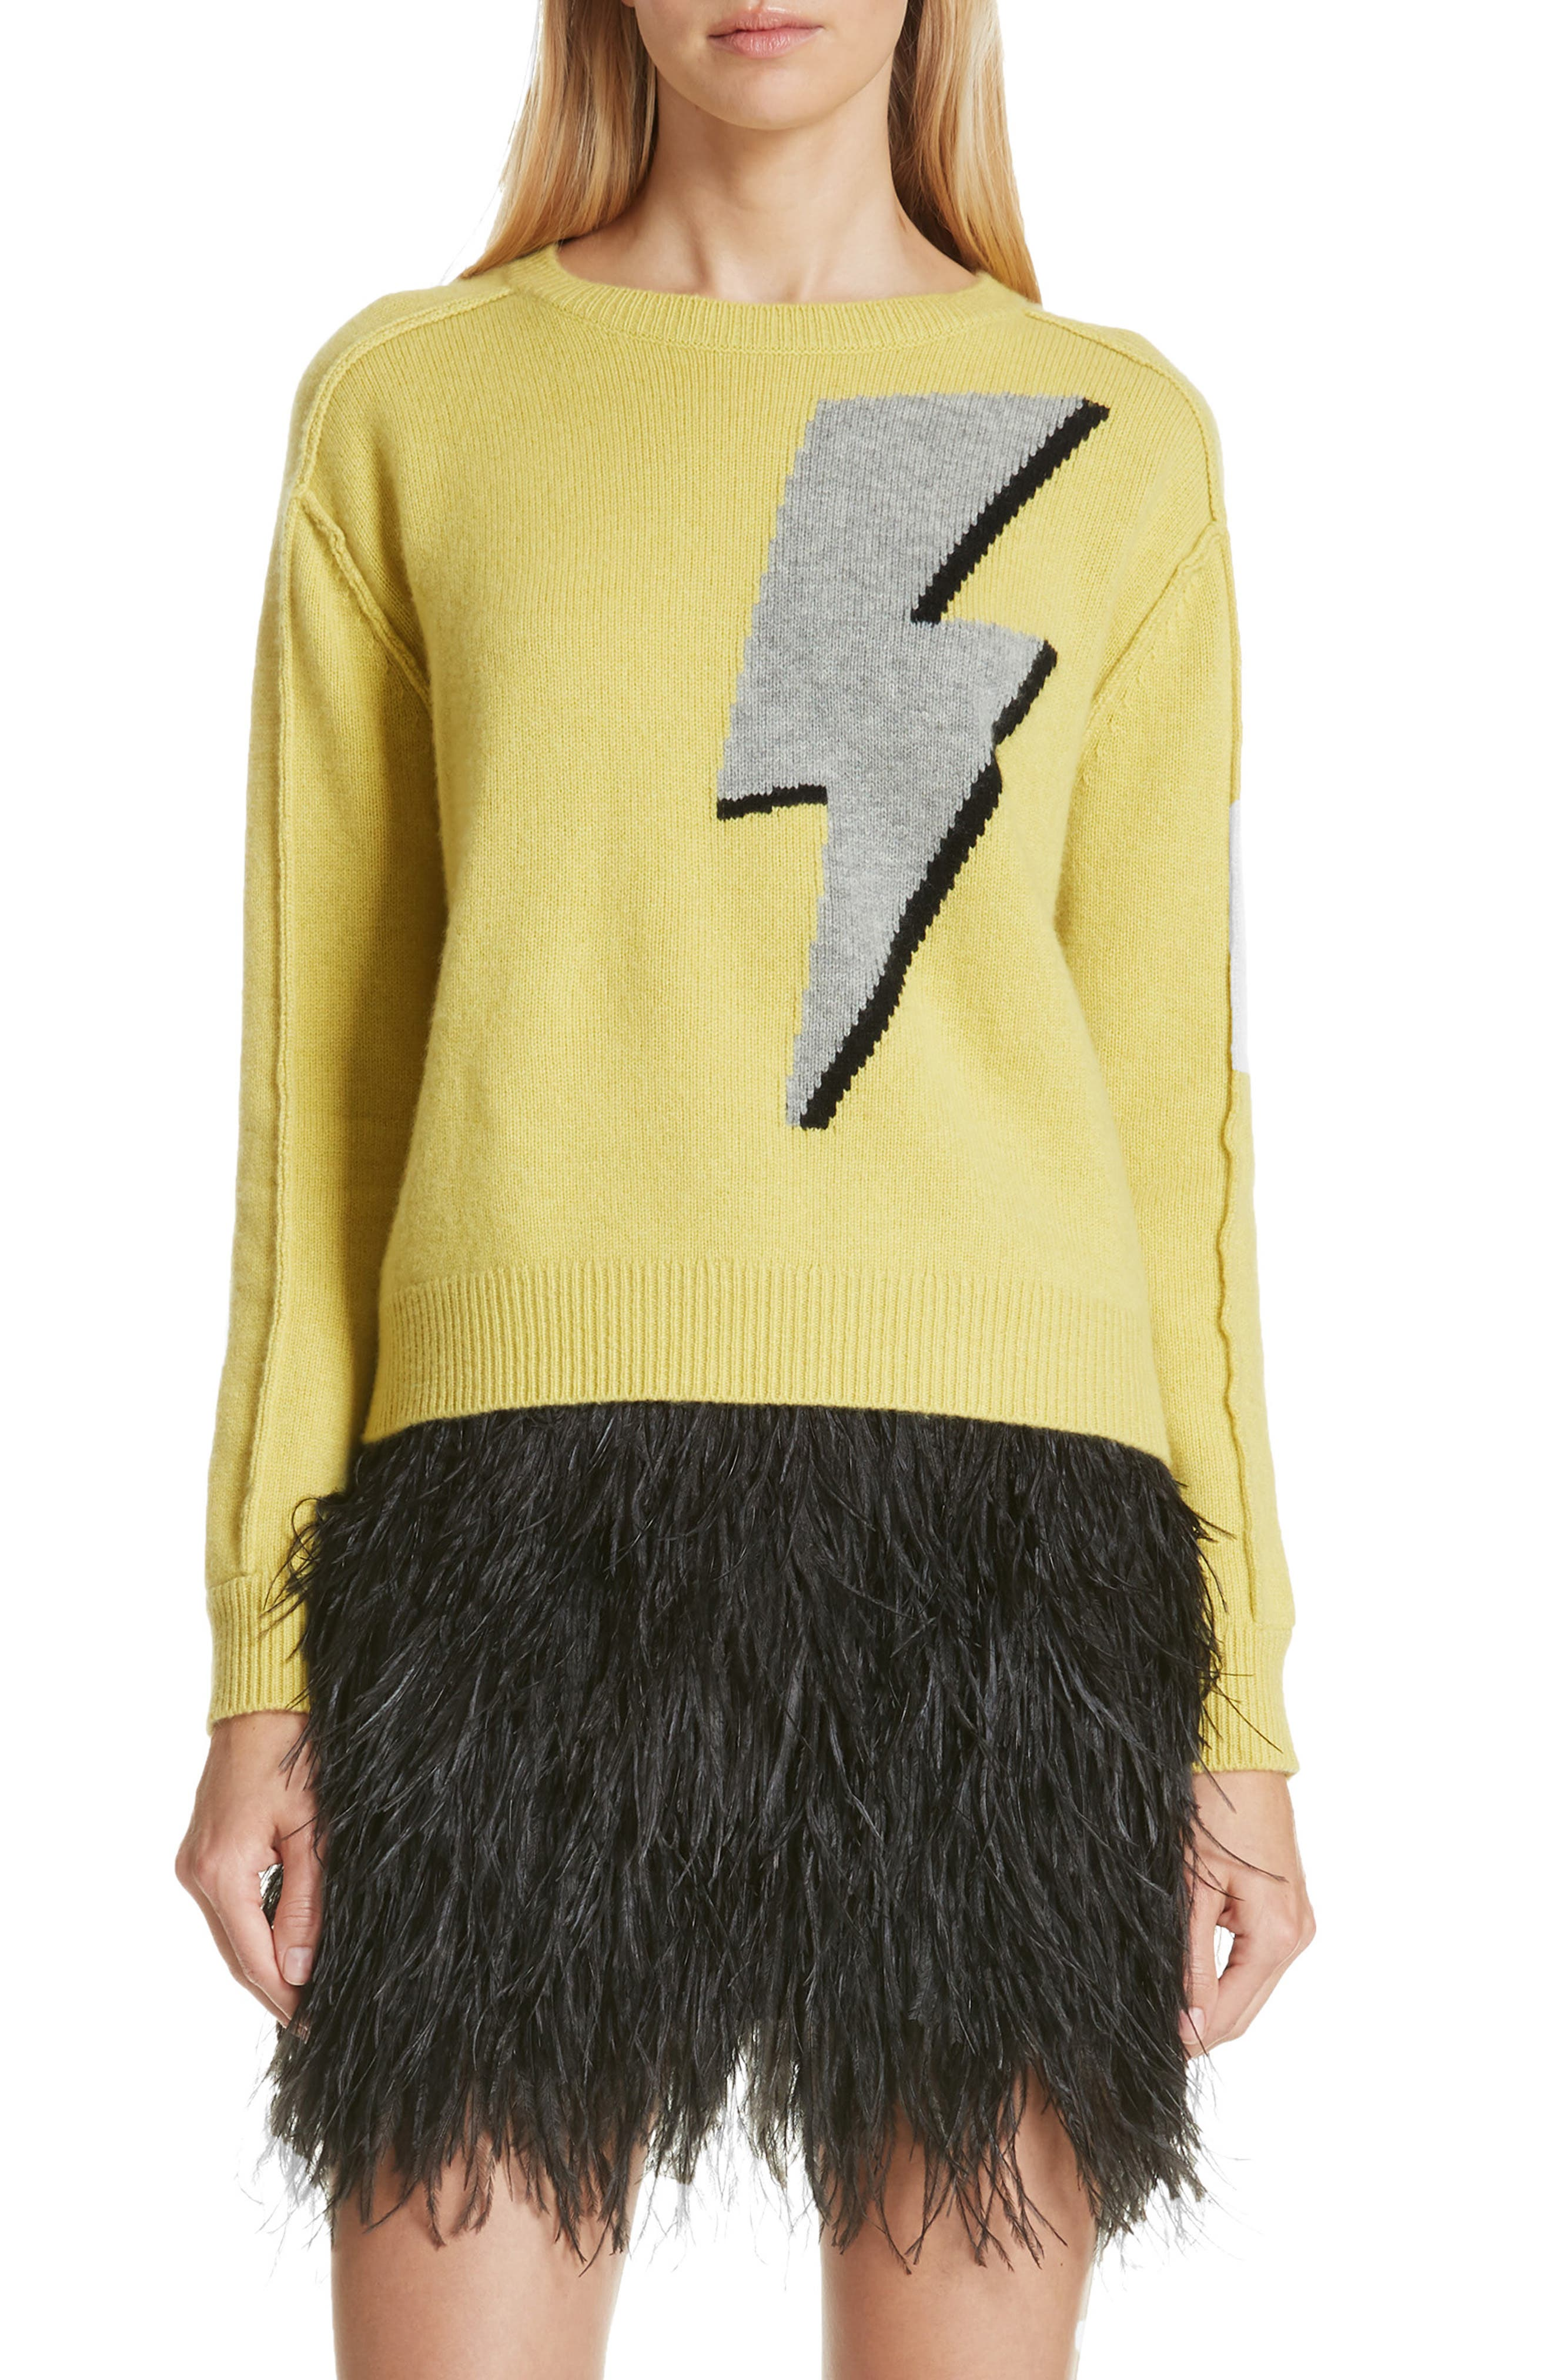 Lightning Bolt Wool & Cashmere Sweater,                         Main,                         color, YELLOW/ GREY